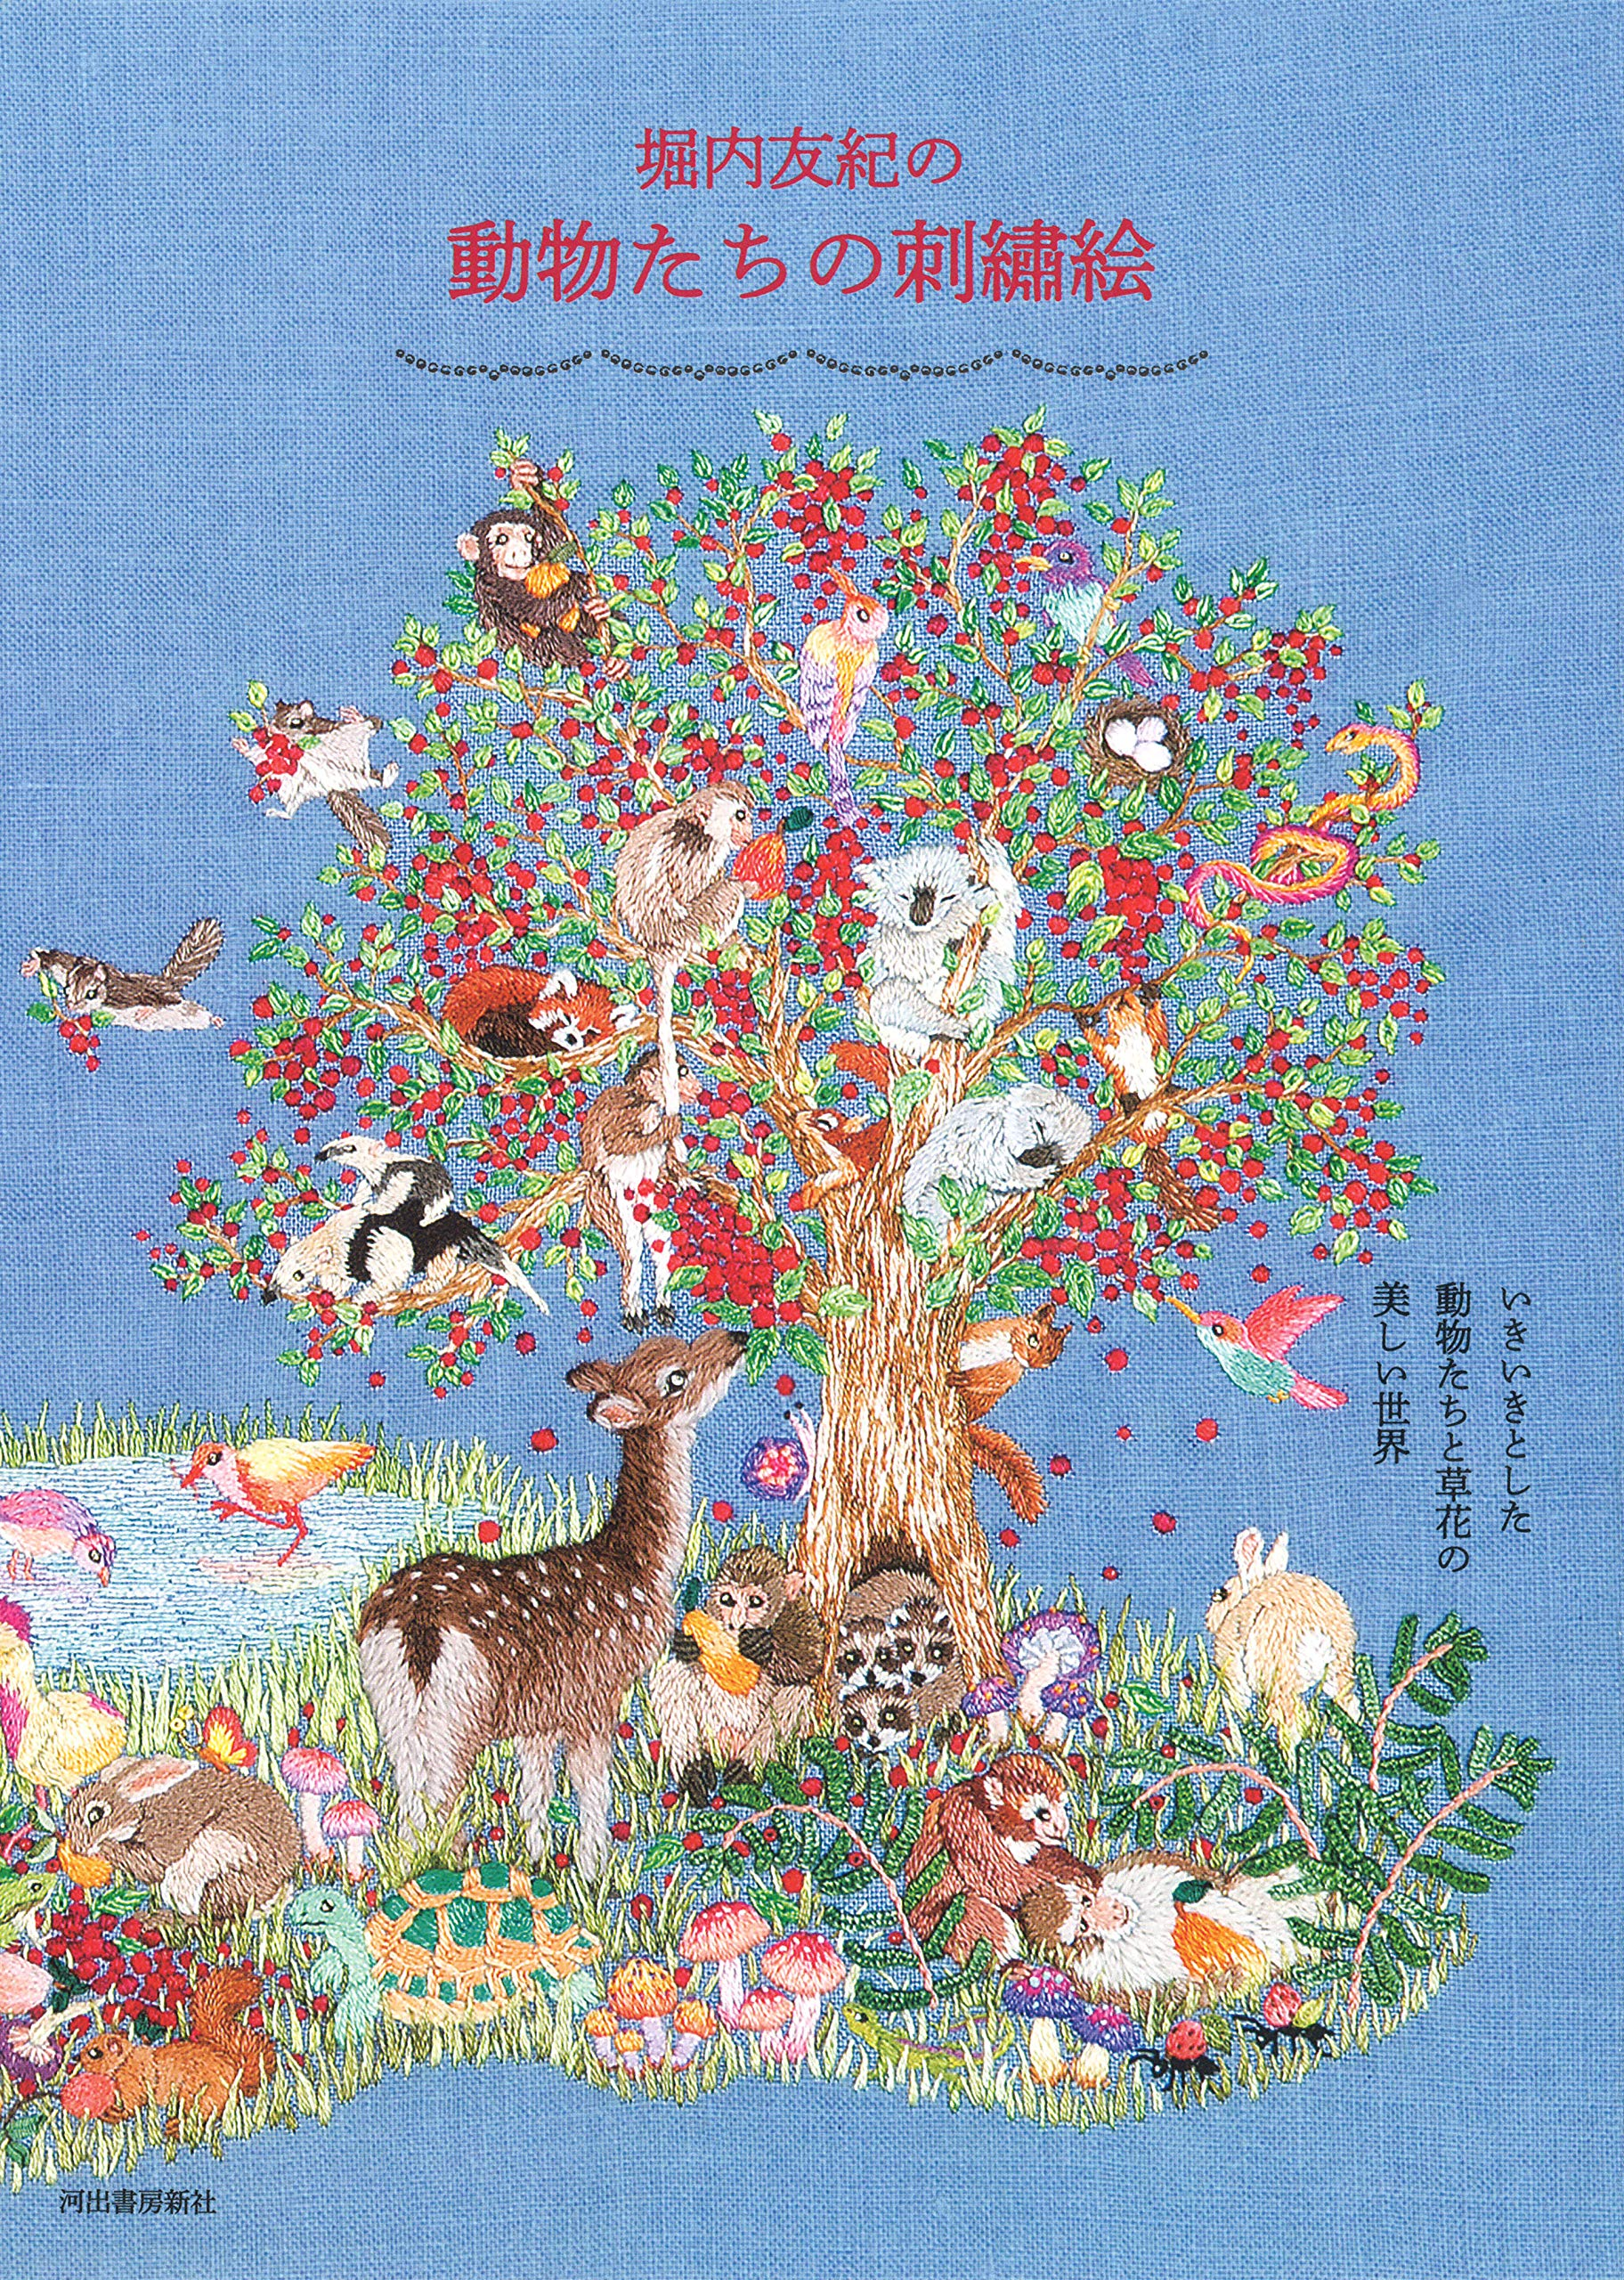 Embroidery picture of animals of Yuki Horiuchi